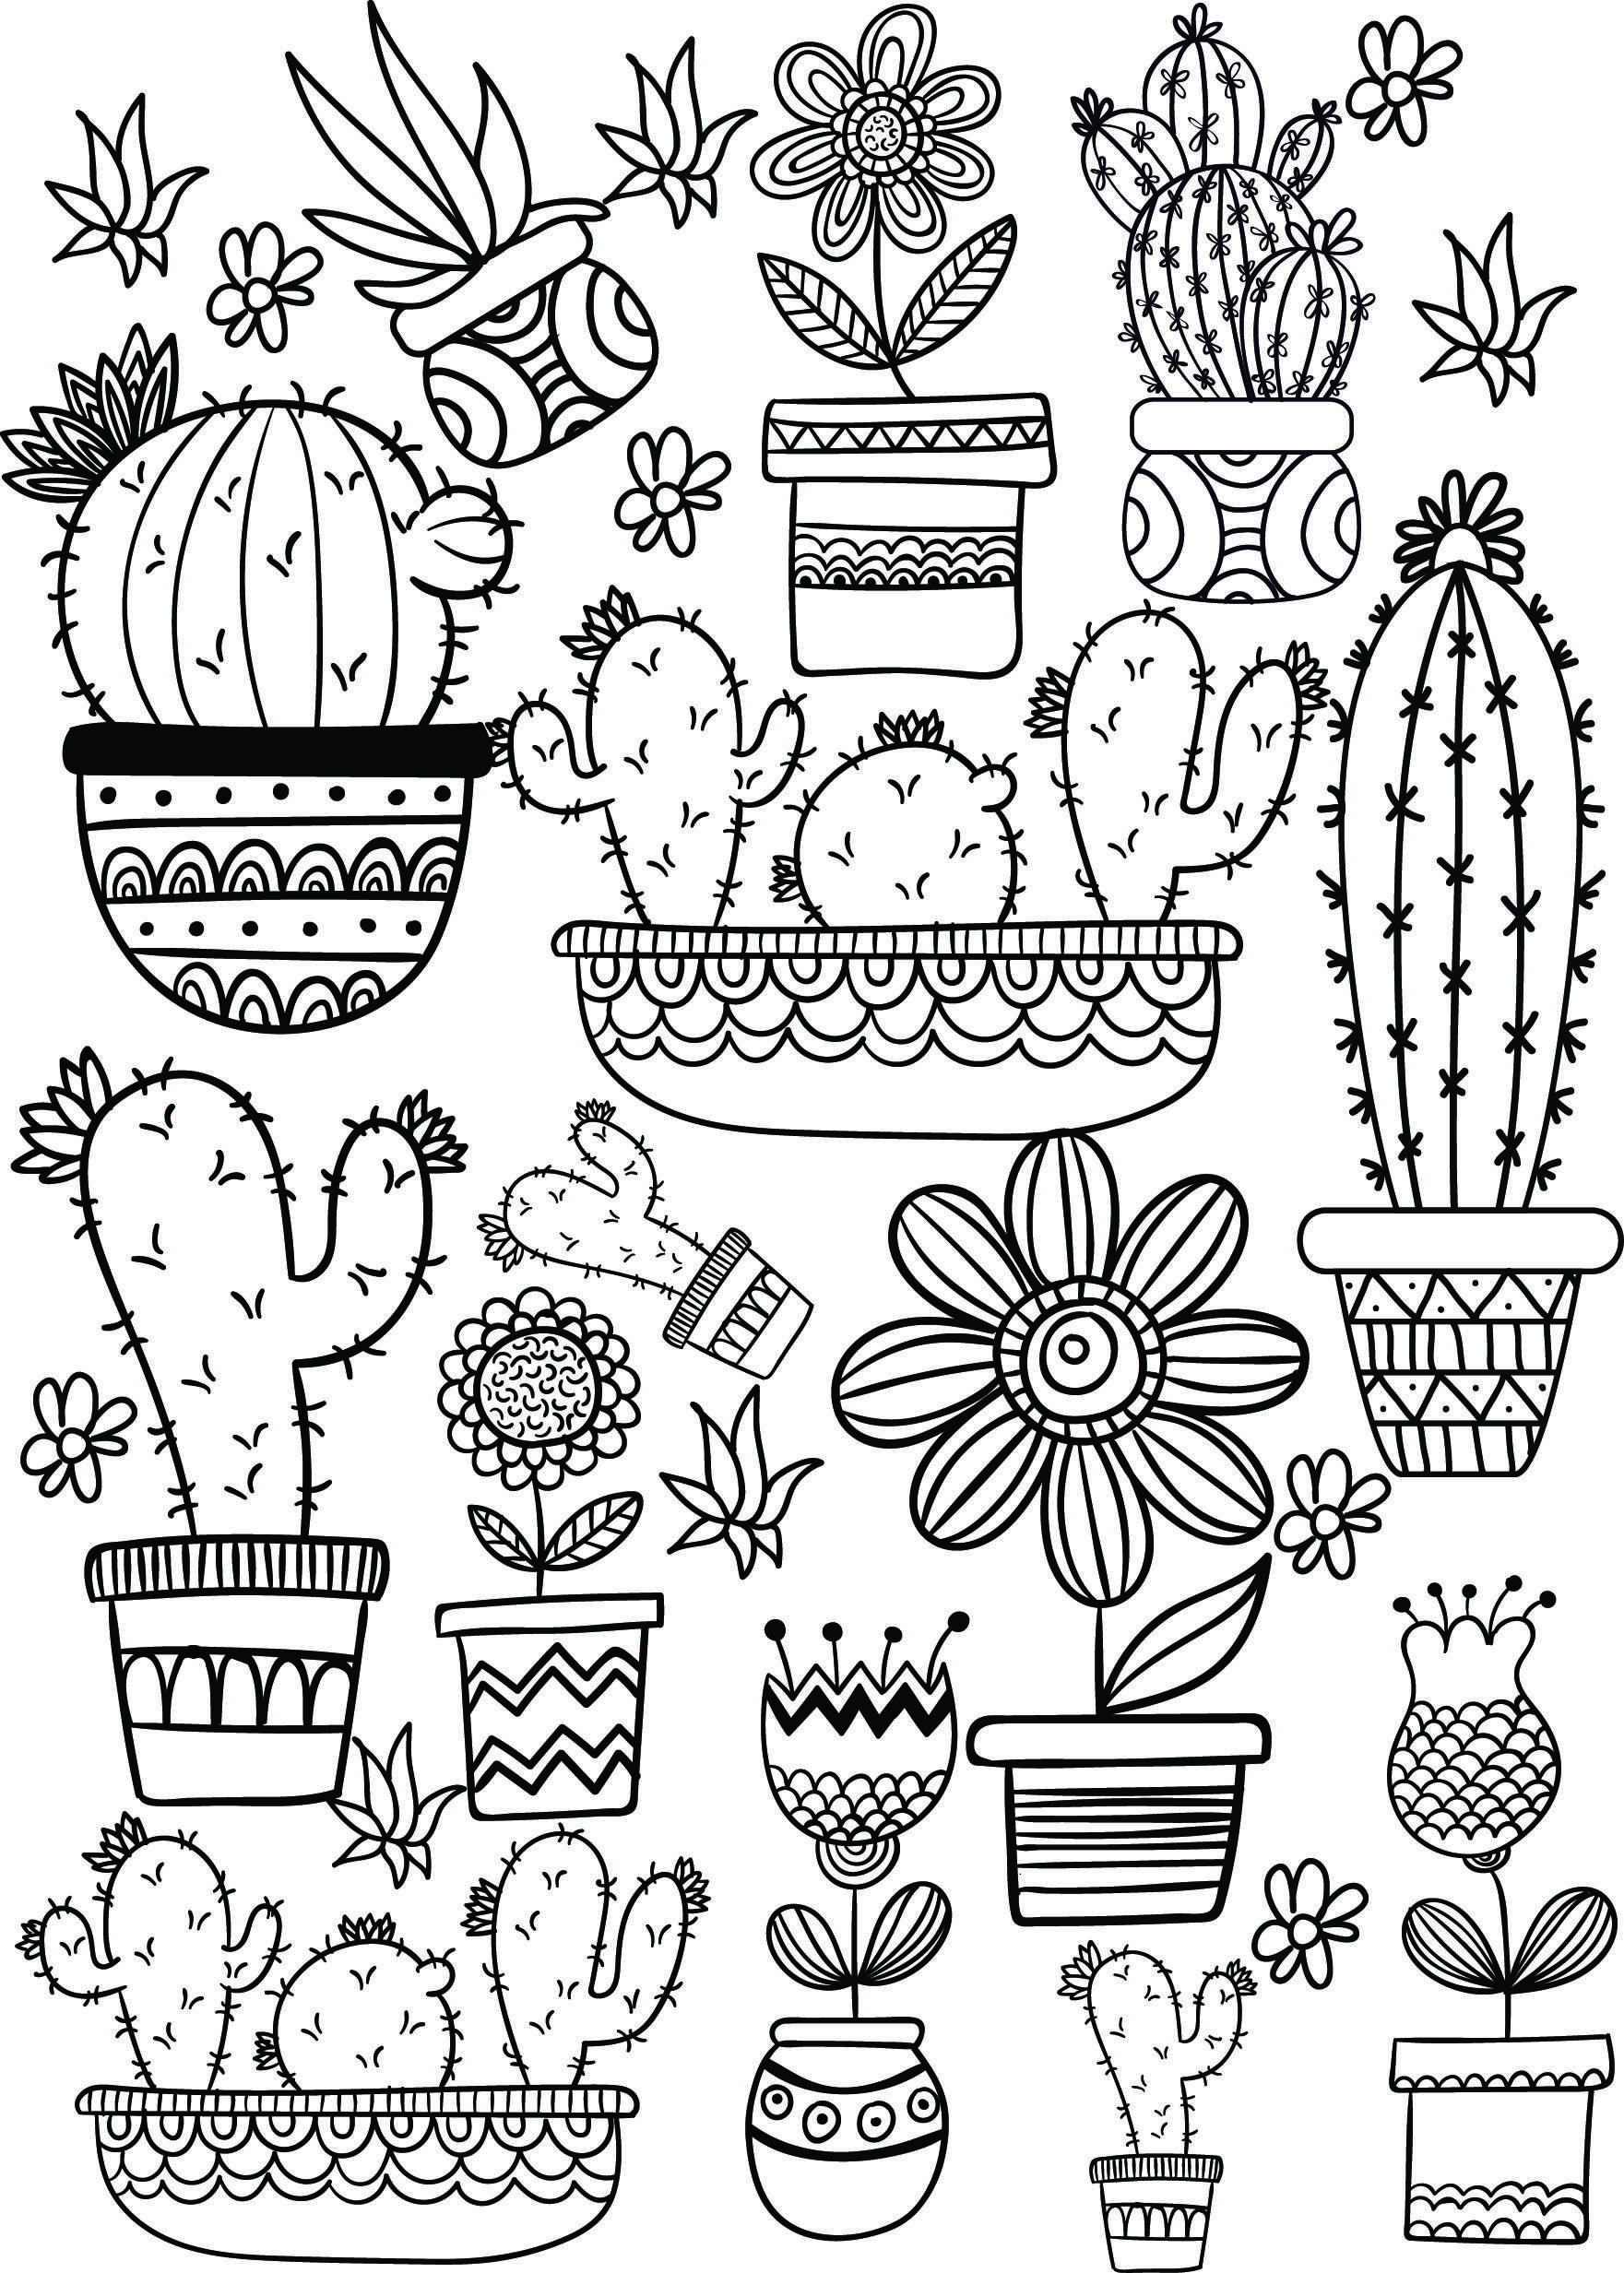 Cactus And Succulent Printable Adult Coloring Pages With Images